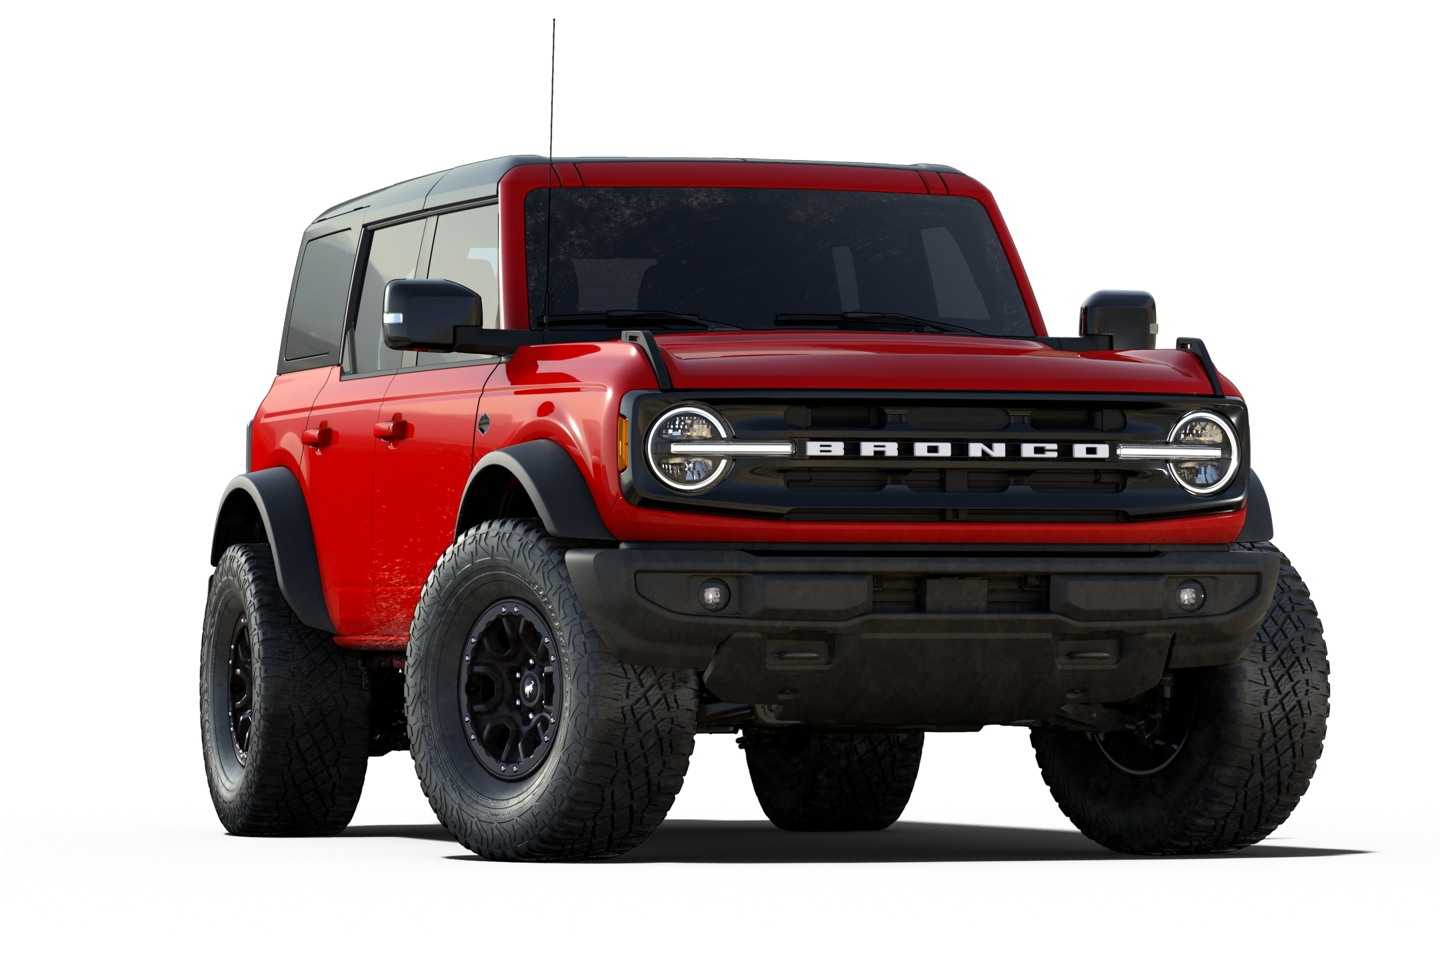 2021 Ford Bronco Wild Trak Model